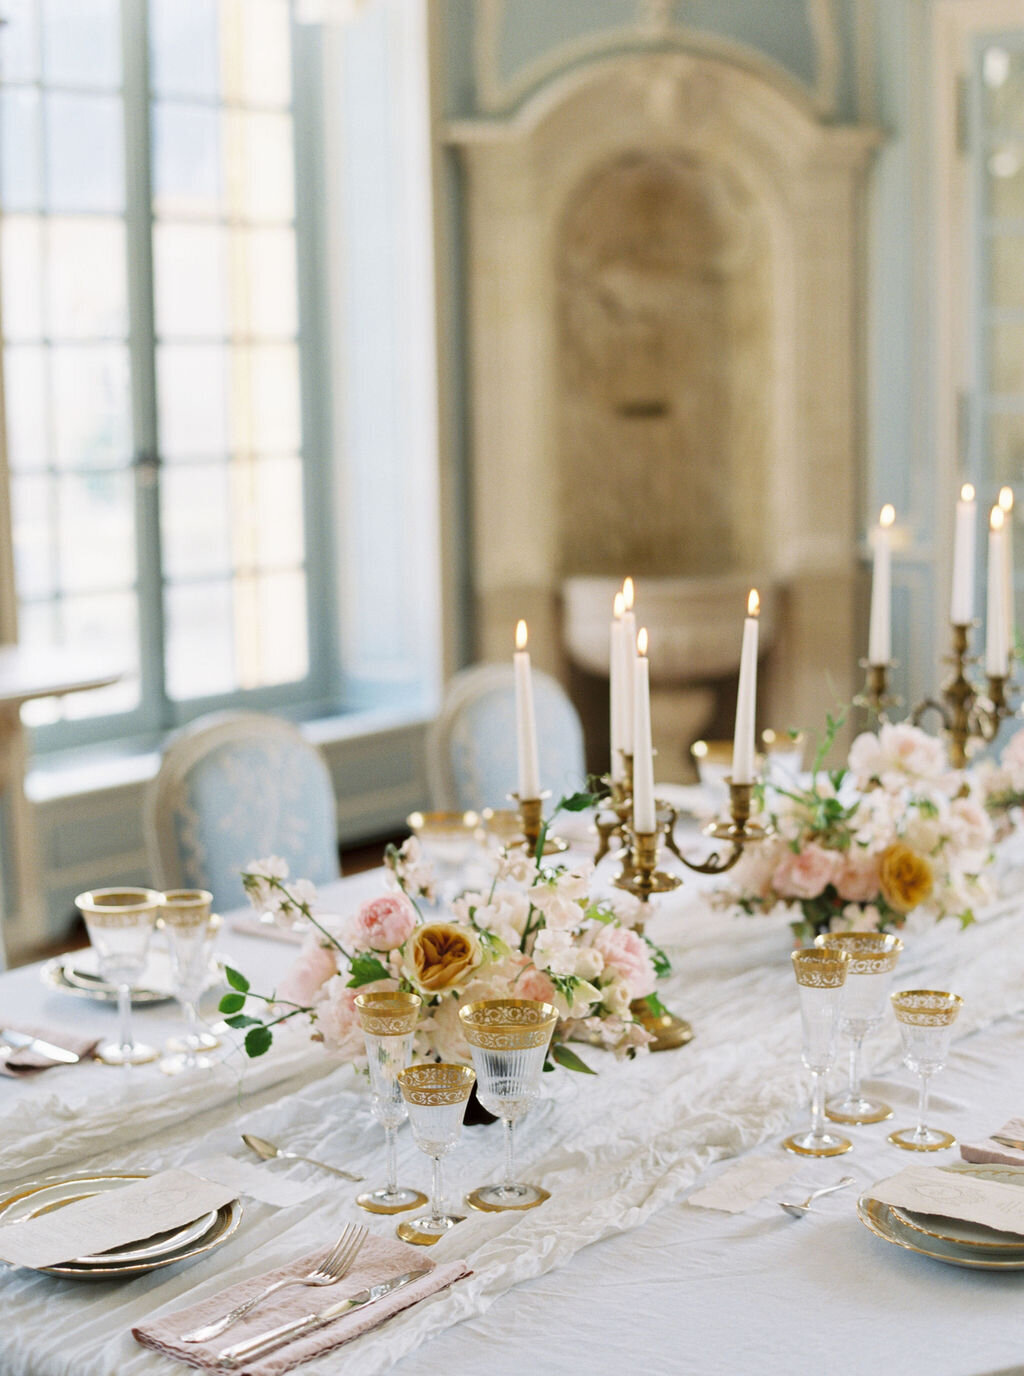 Chateau-de-Villette-wedding-Floraison4